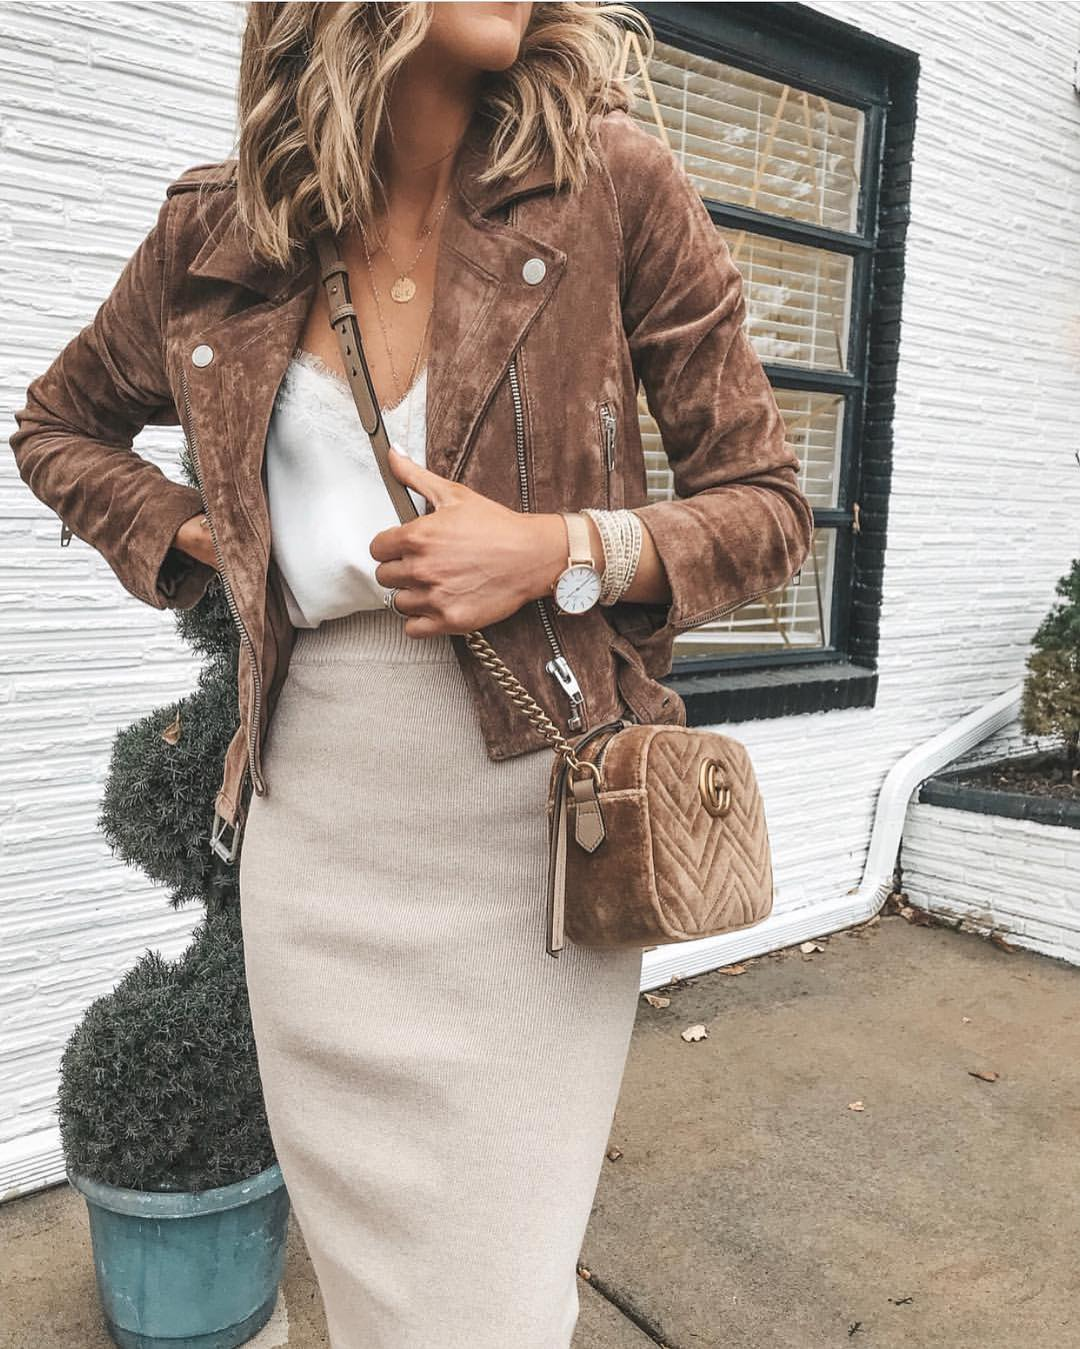 Brown Suede Biker Jacket And Knitted Cream-White Pencil Skirt Combo 2019